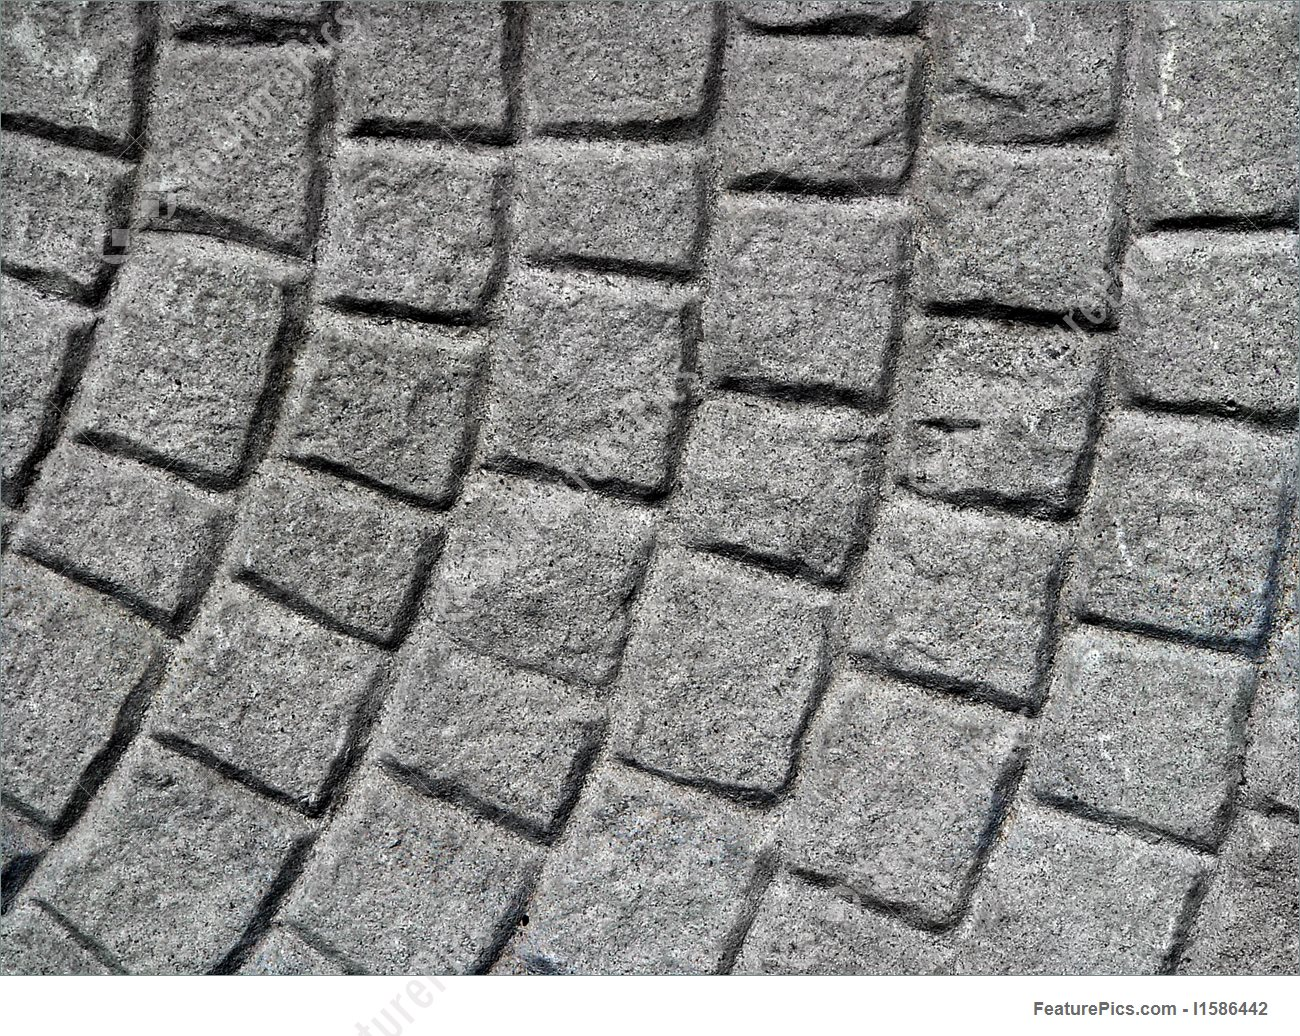 Paving Stone Picture.